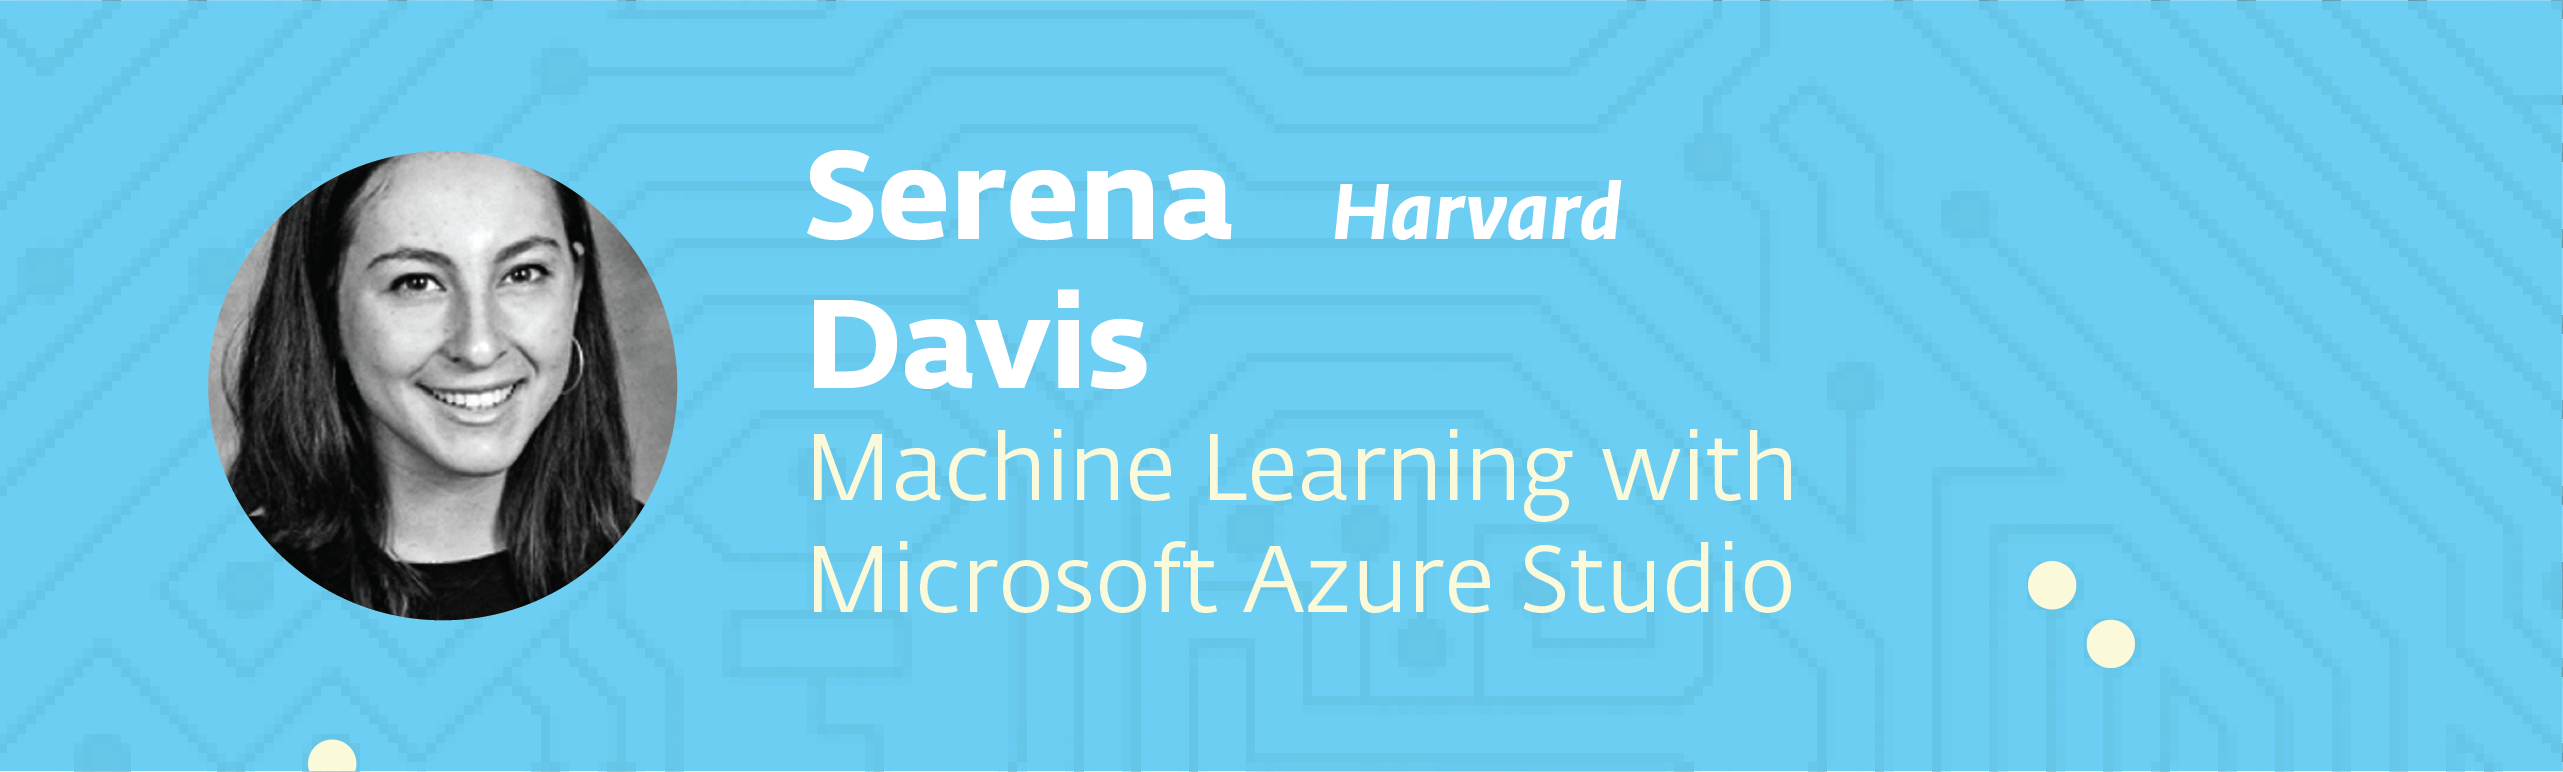 NewBanner for Page 10 - Machine Learning with Microsoft Azure Studio